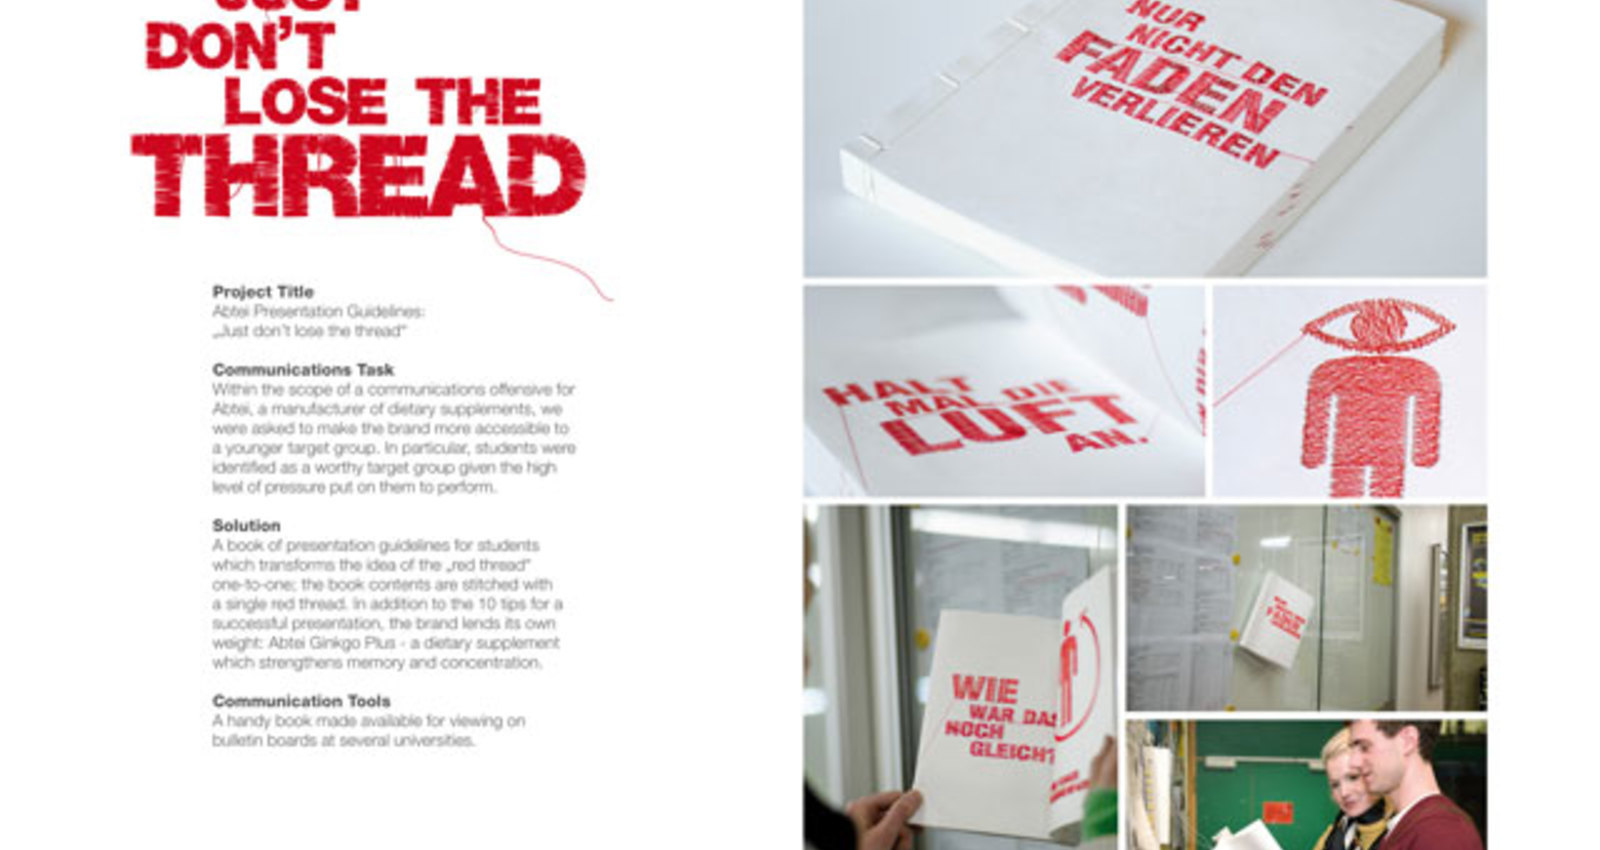 The Red-Thread-Book